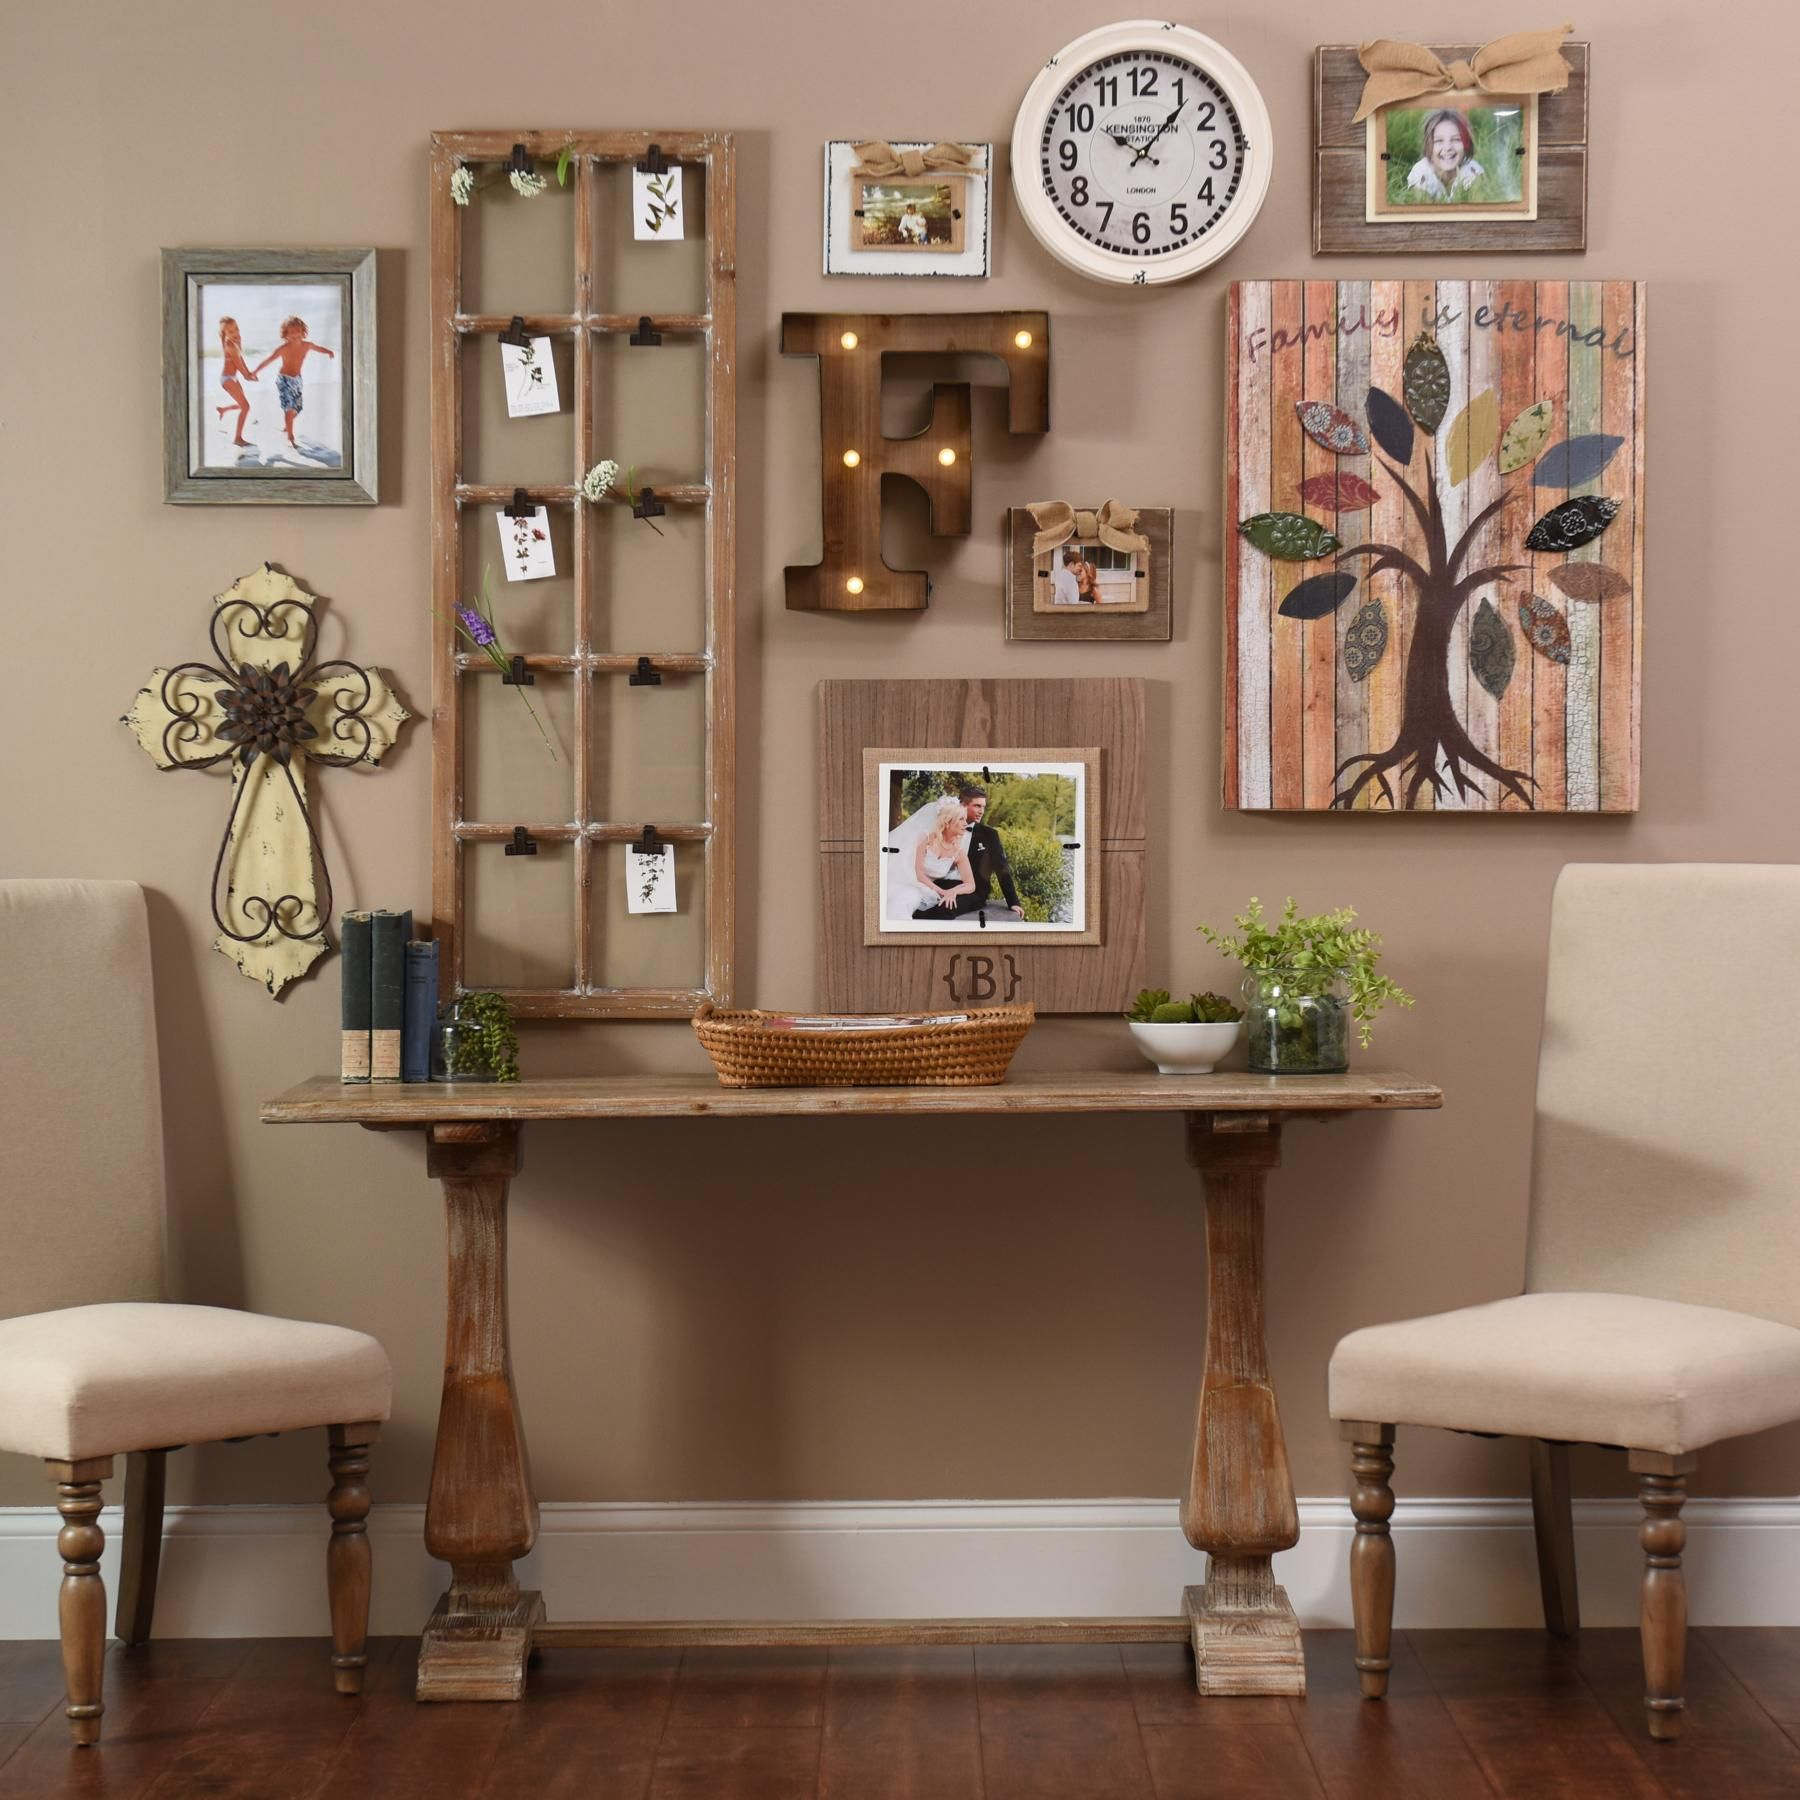 Make your family room a little more personal with items ... on Kirkland's Decor Home Accents id=22811